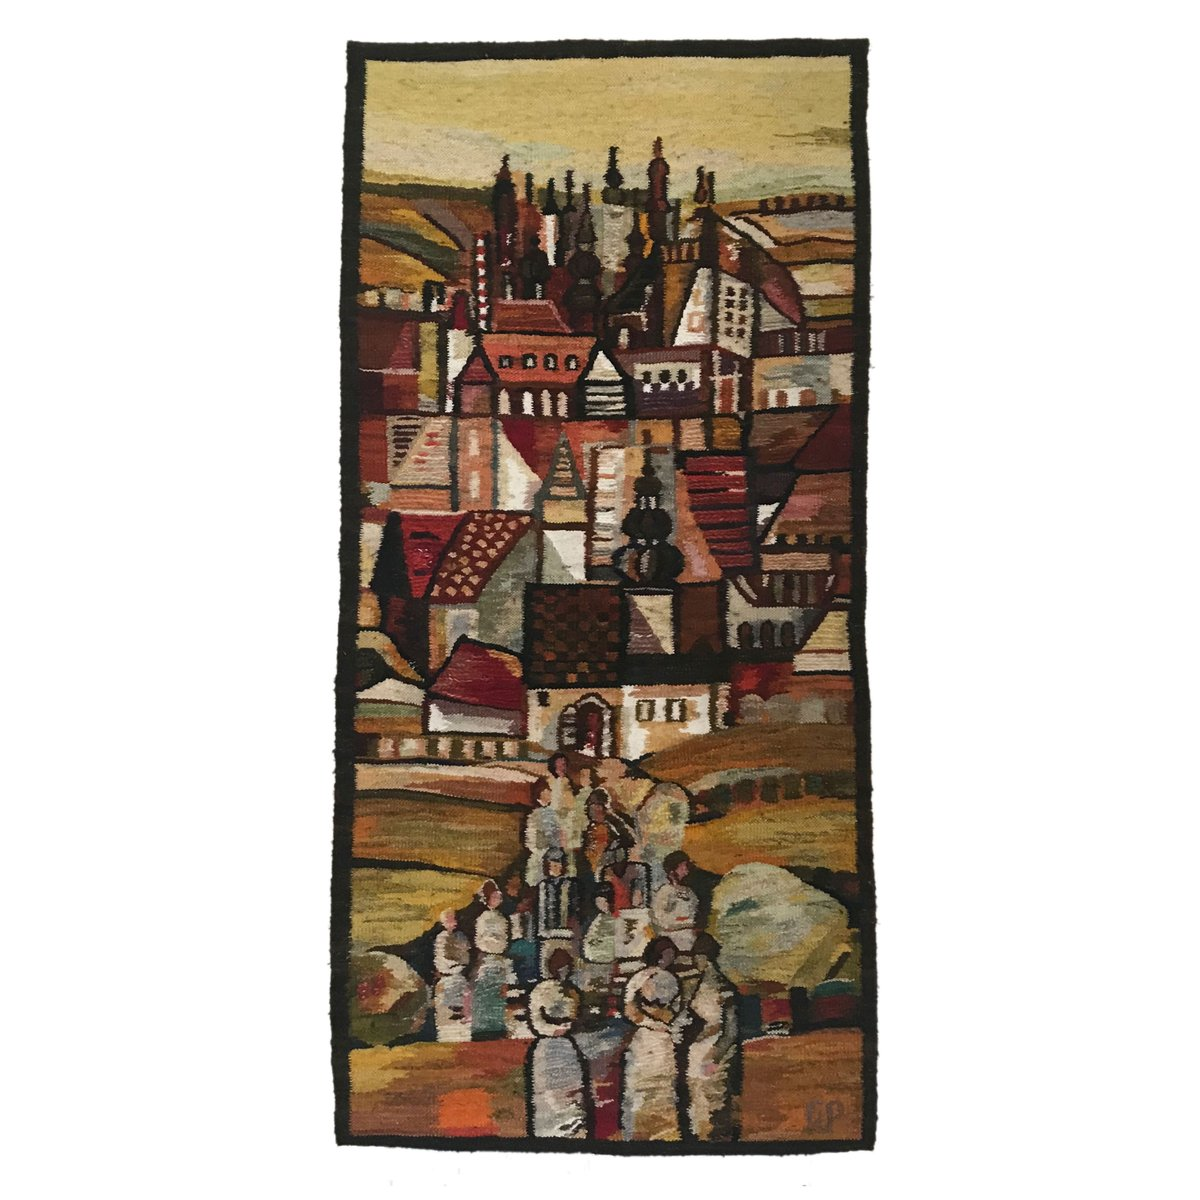 Wandteppich Modern Polish Handwoven Towers Tapestry By Piotr Grabowski For Cepelia 1982